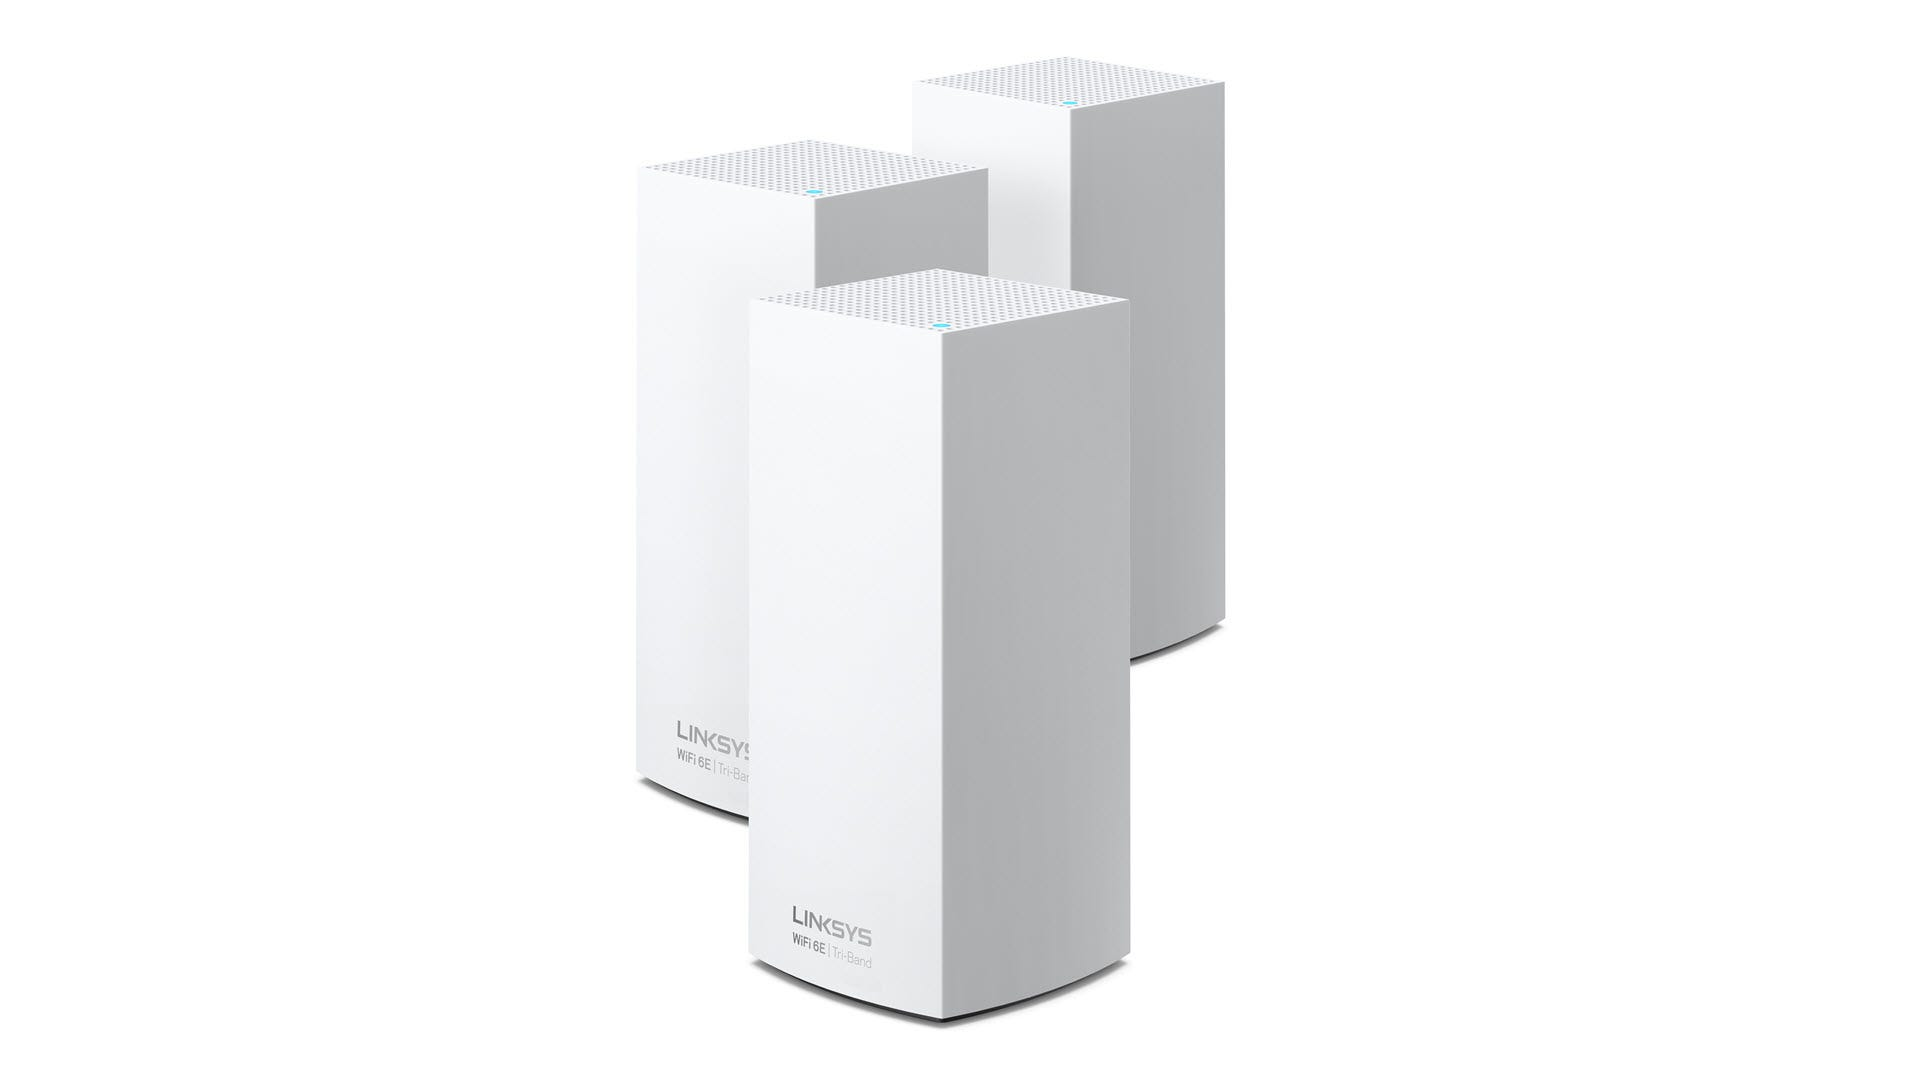 A three-pack Atlas Max 6E system on a white background